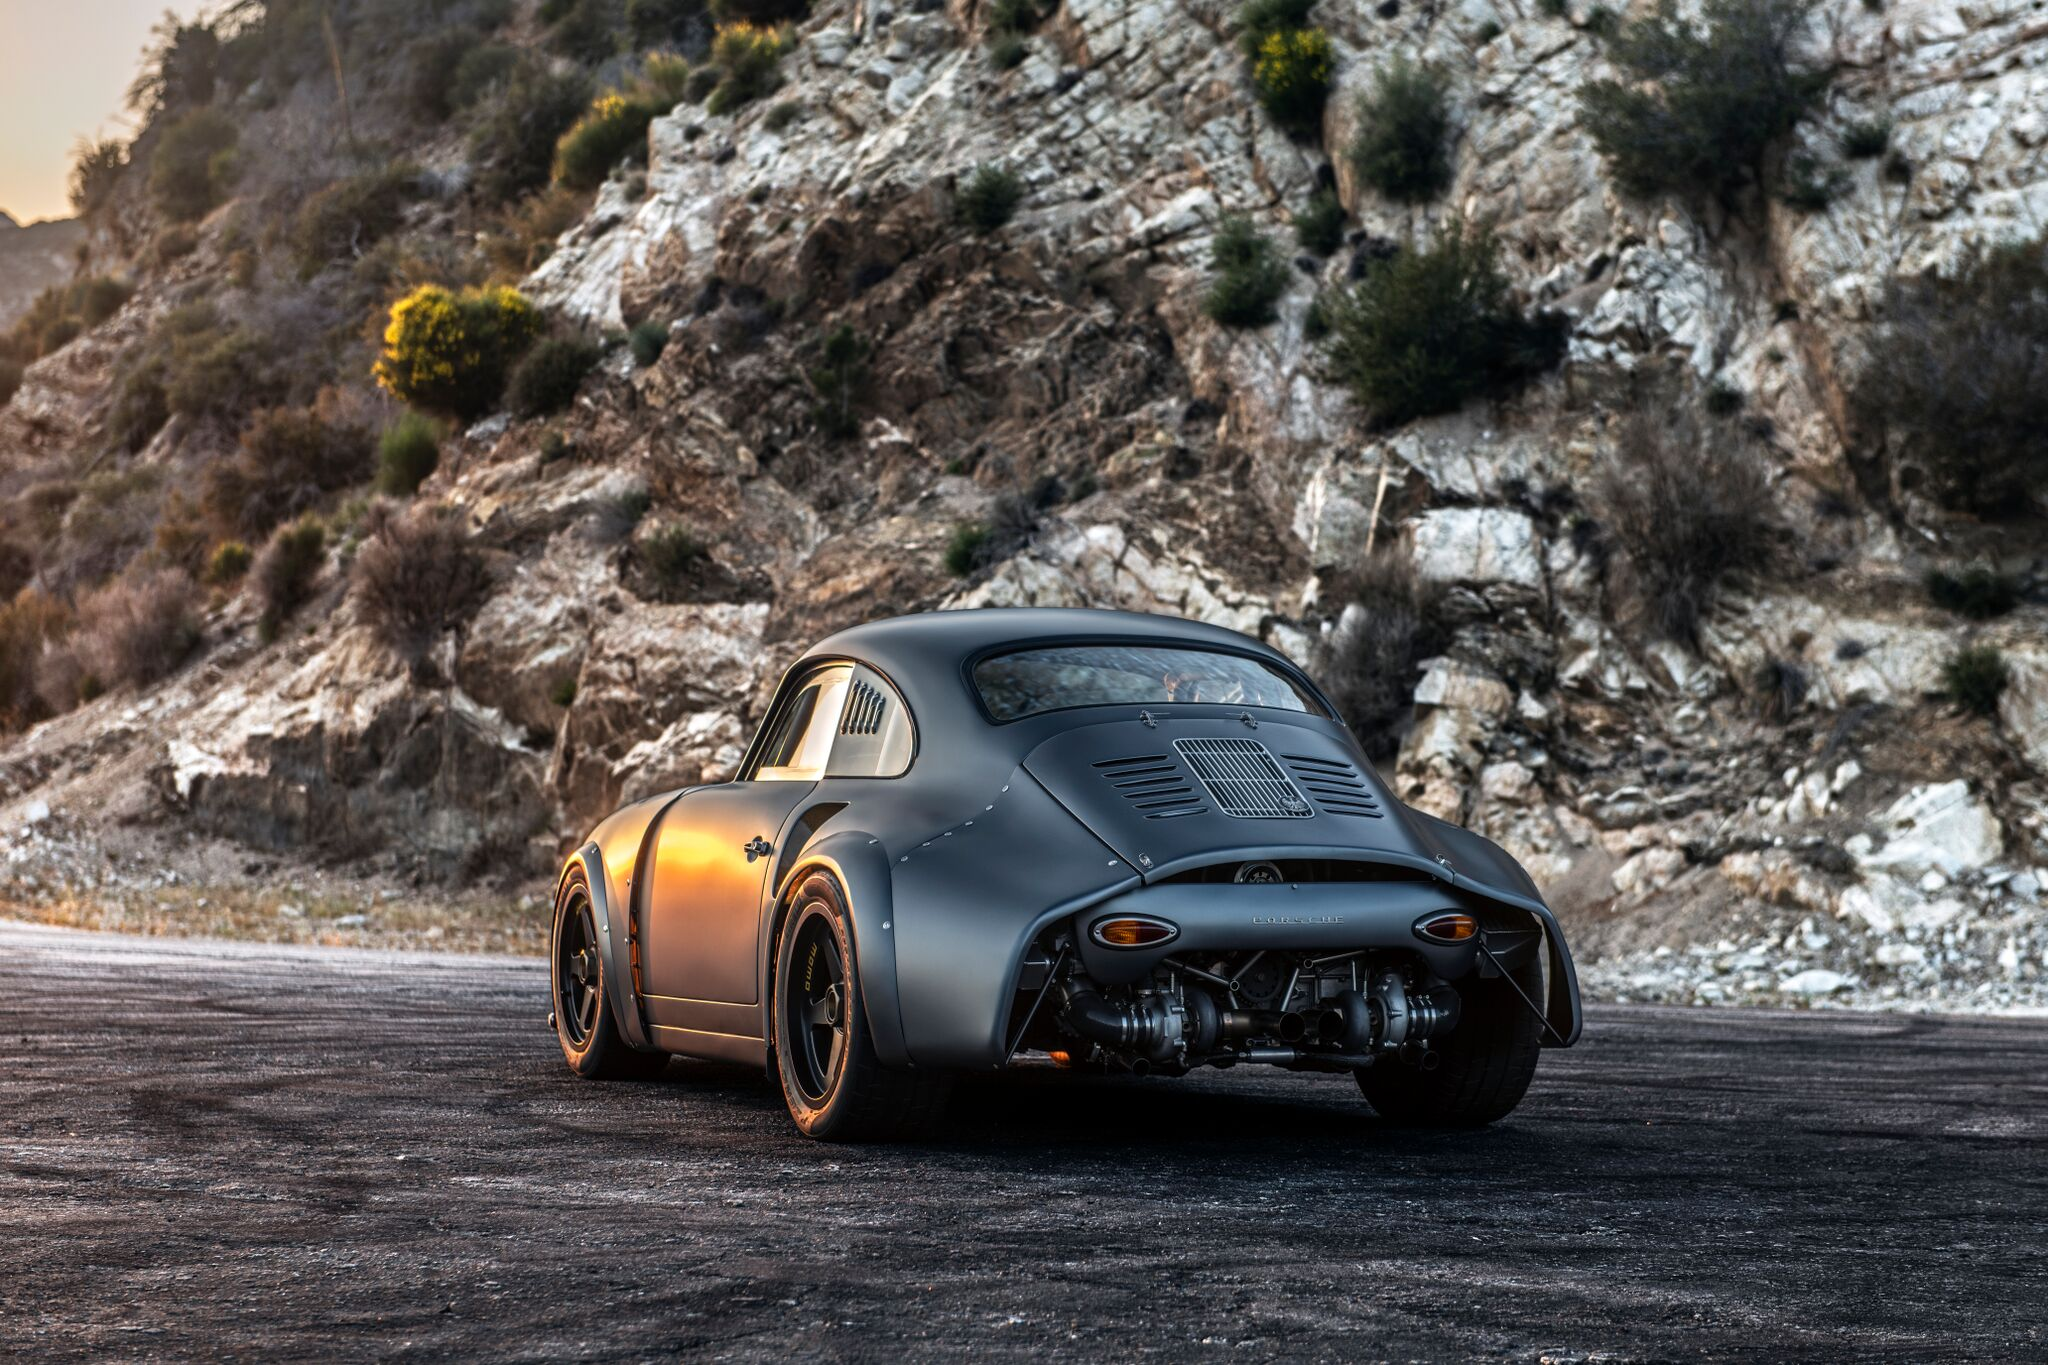 Porsche-356-RSR-Outlaw-by-Momo-and-Emory-motorsports-7